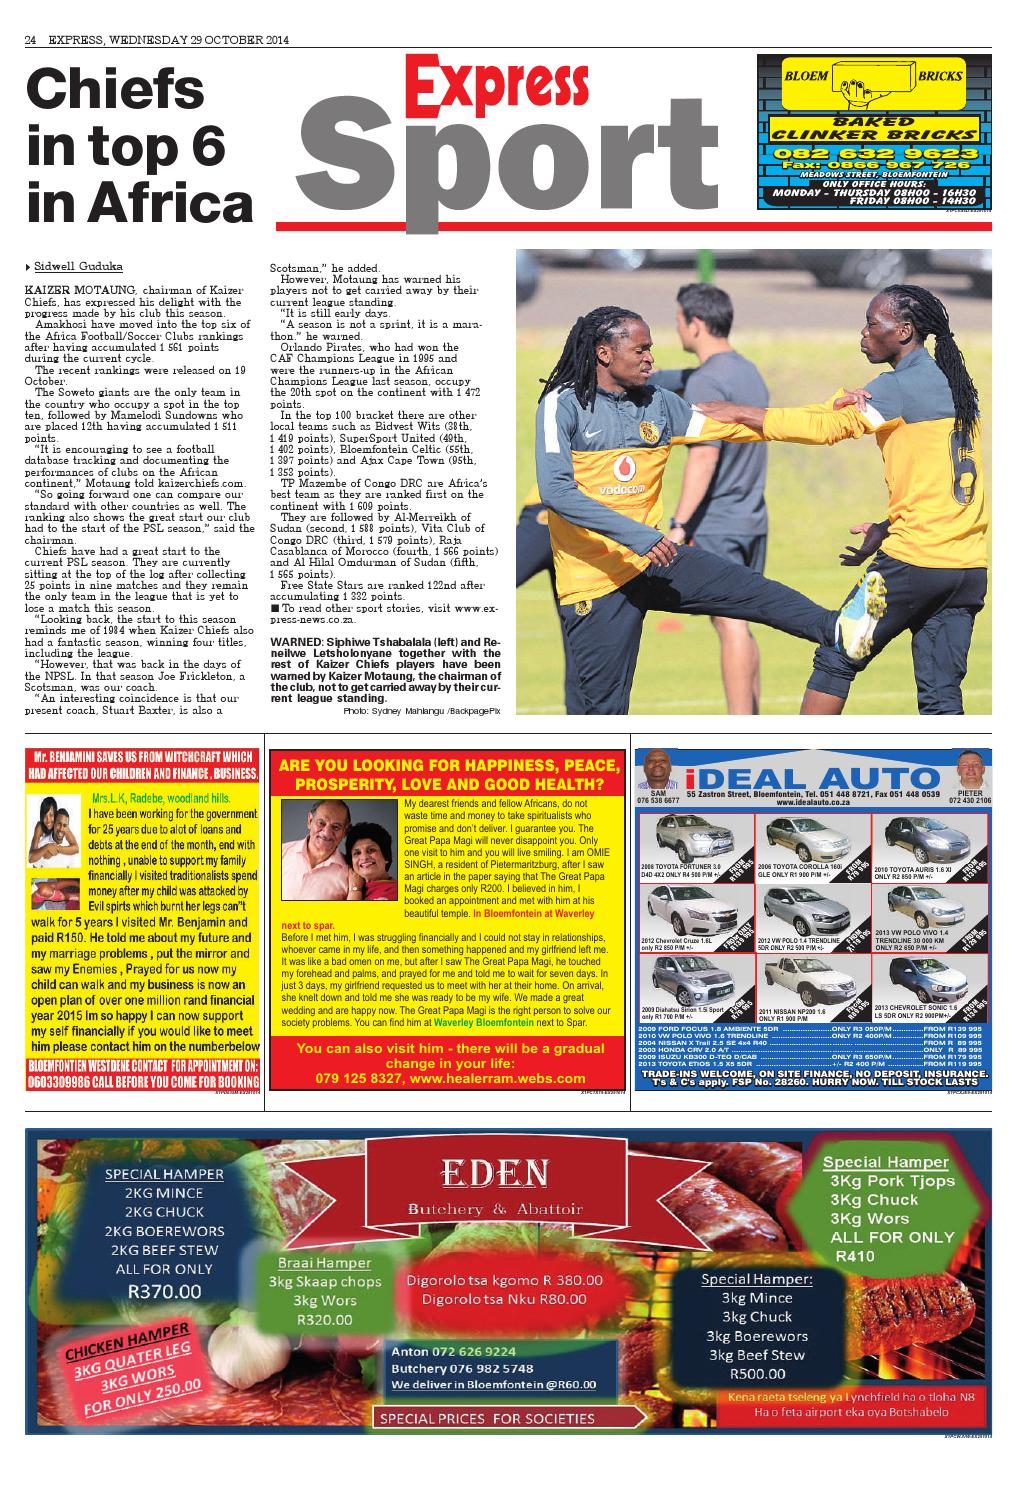 Expressex 20141029 by Northern Cape Express Express - Issuu